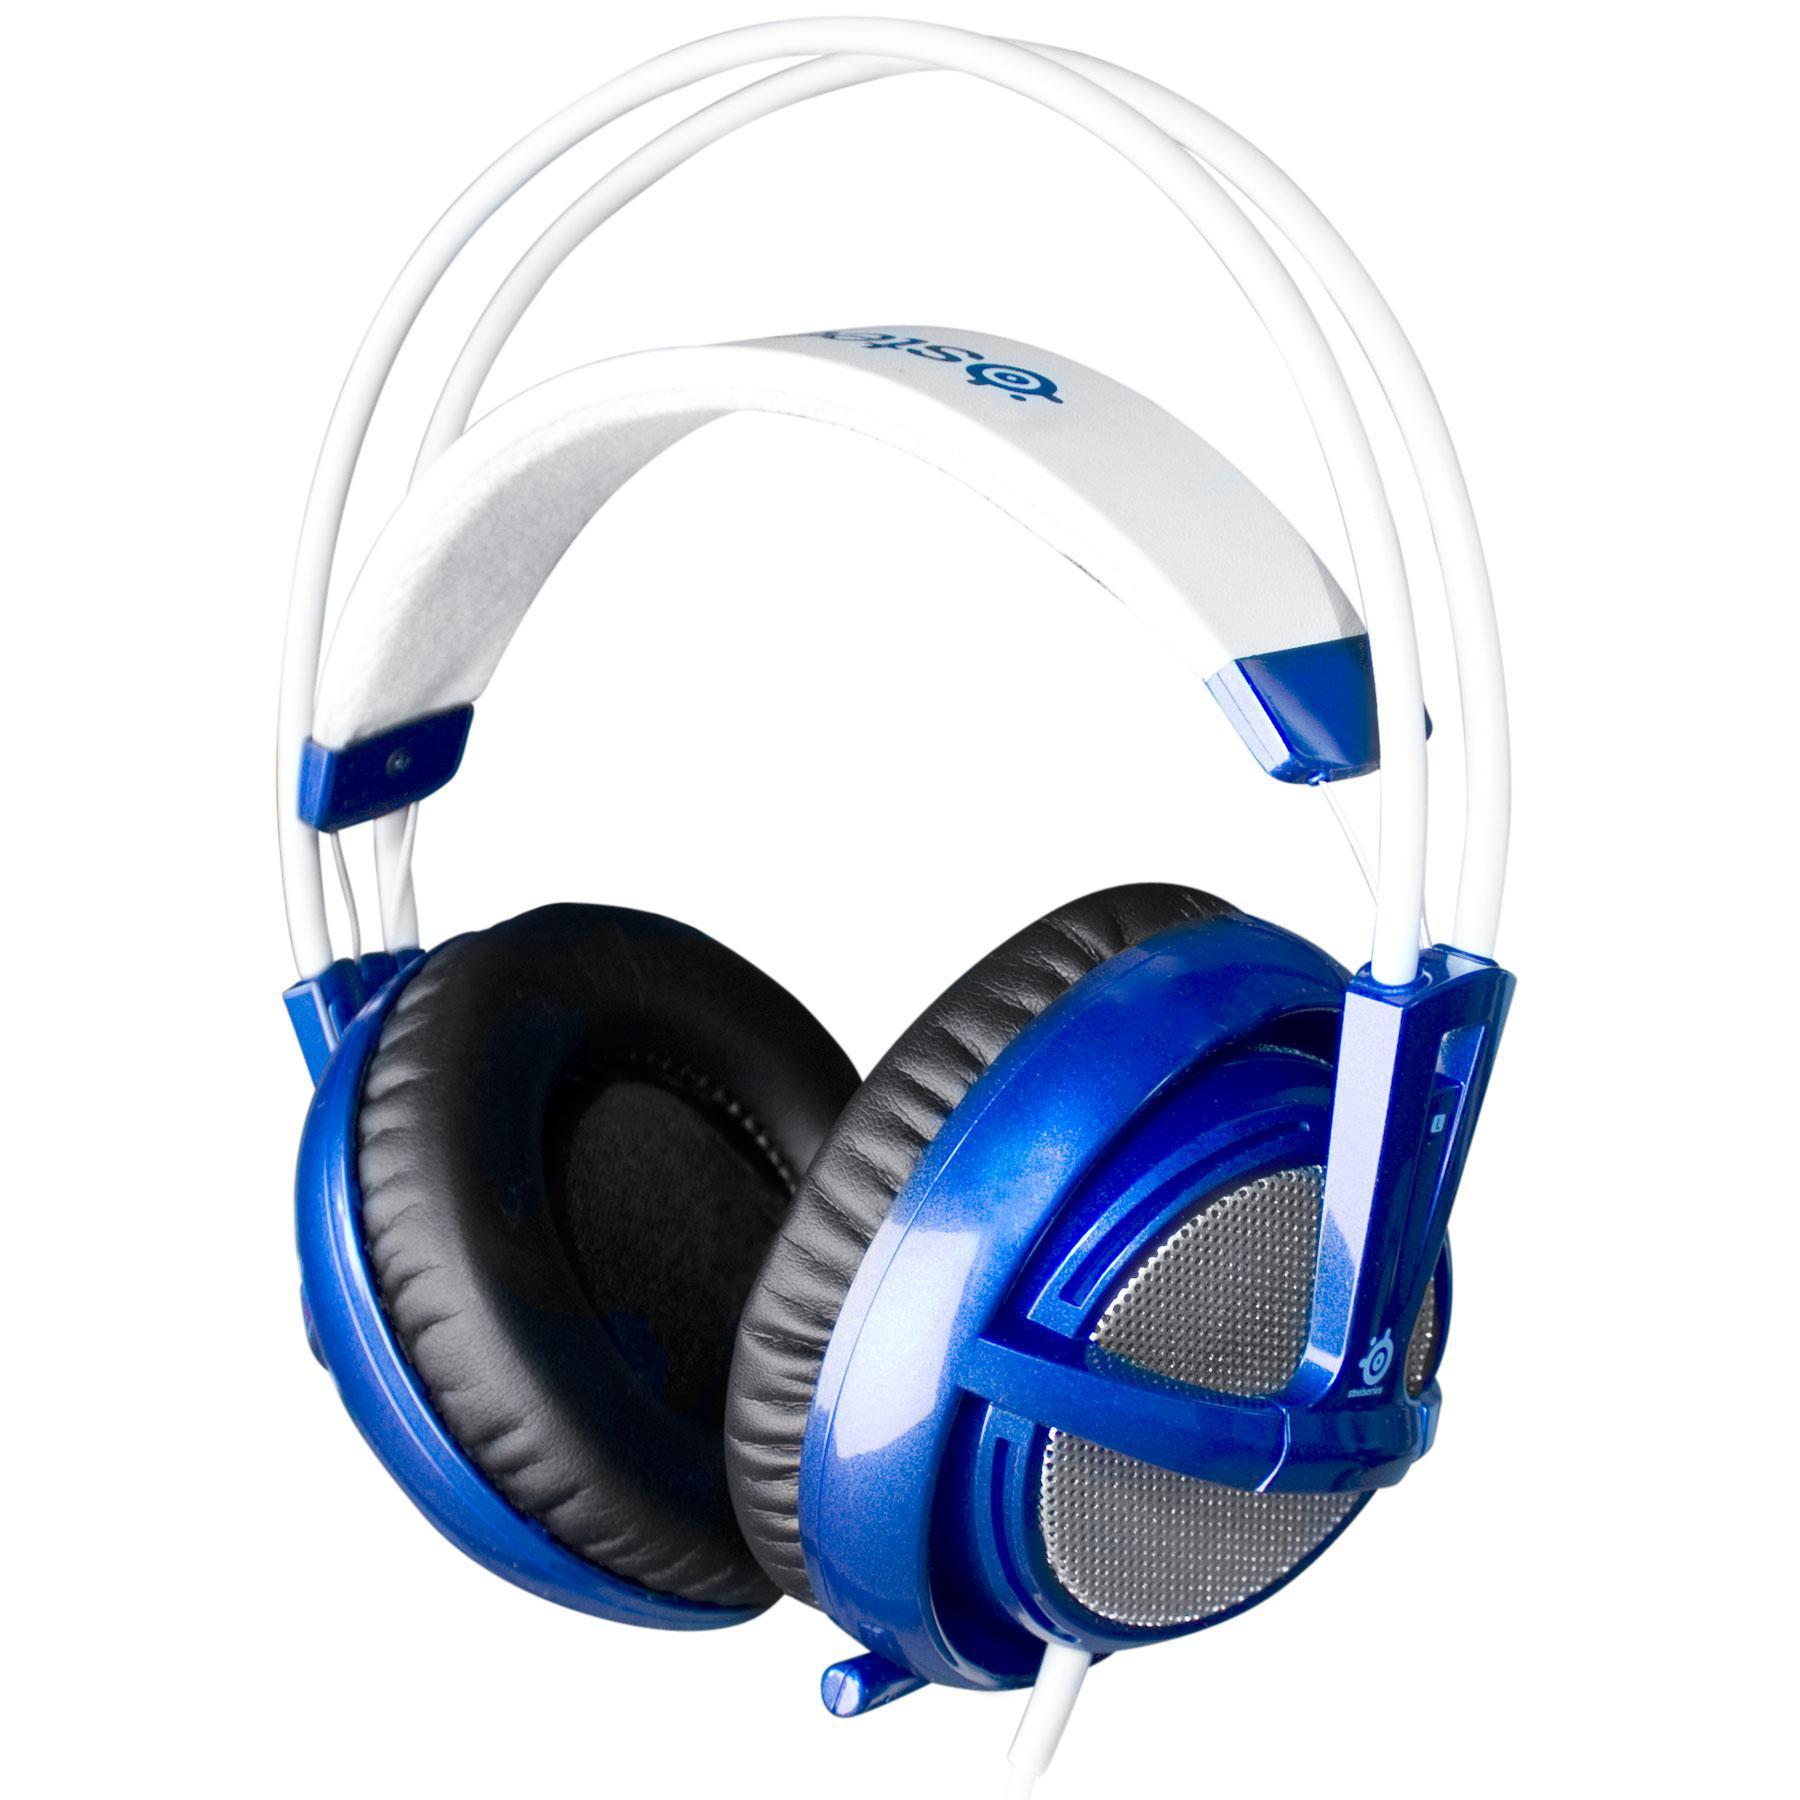 casque steelseries siberia v2 bleu reconditionn back market. Black Bedroom Furniture Sets. Home Design Ideas